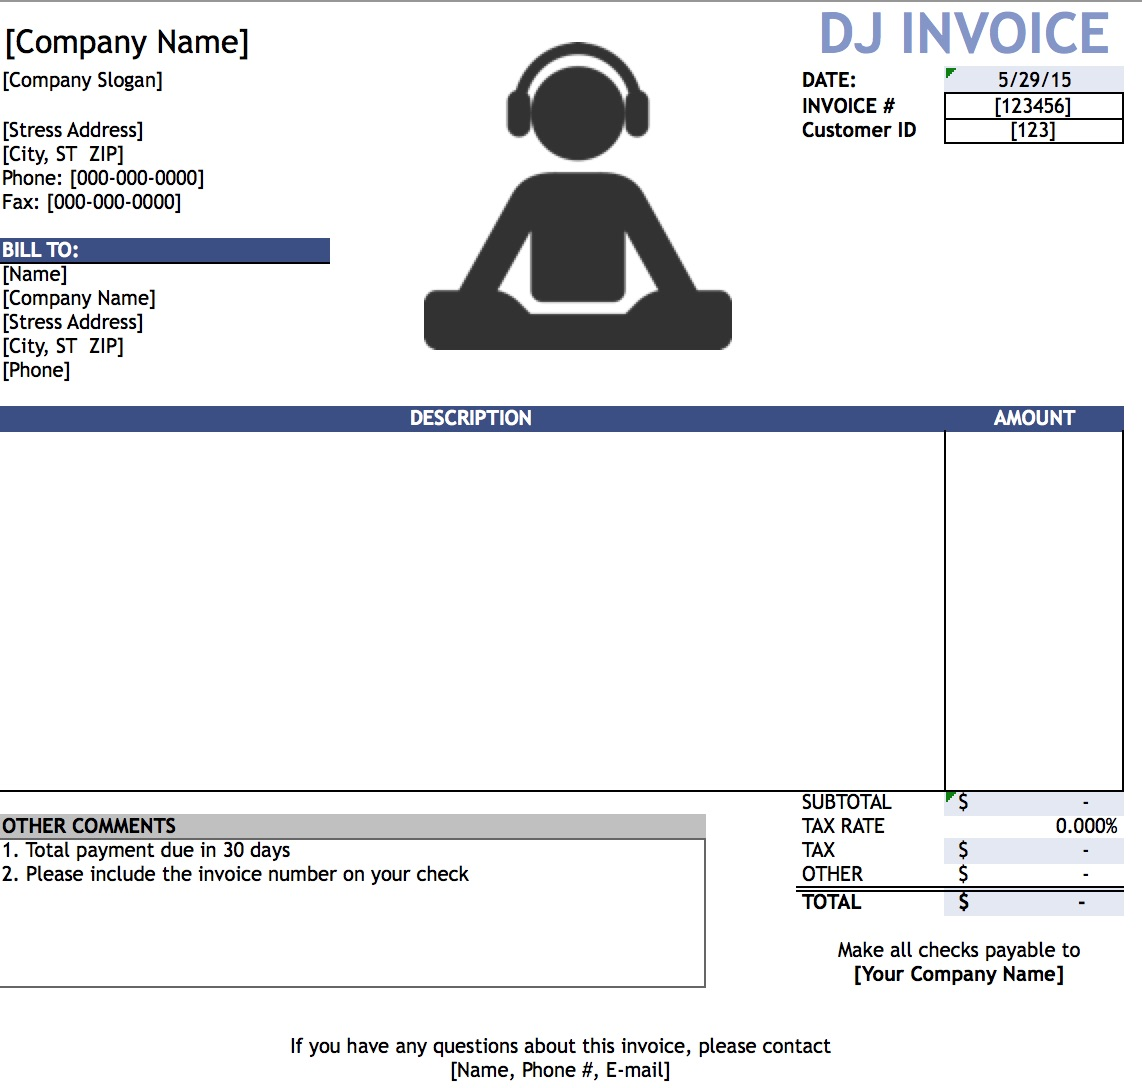 Free DJ Disc Jockey Invoice Template Excel PDF Word Doc - Invoice proforma word for service business